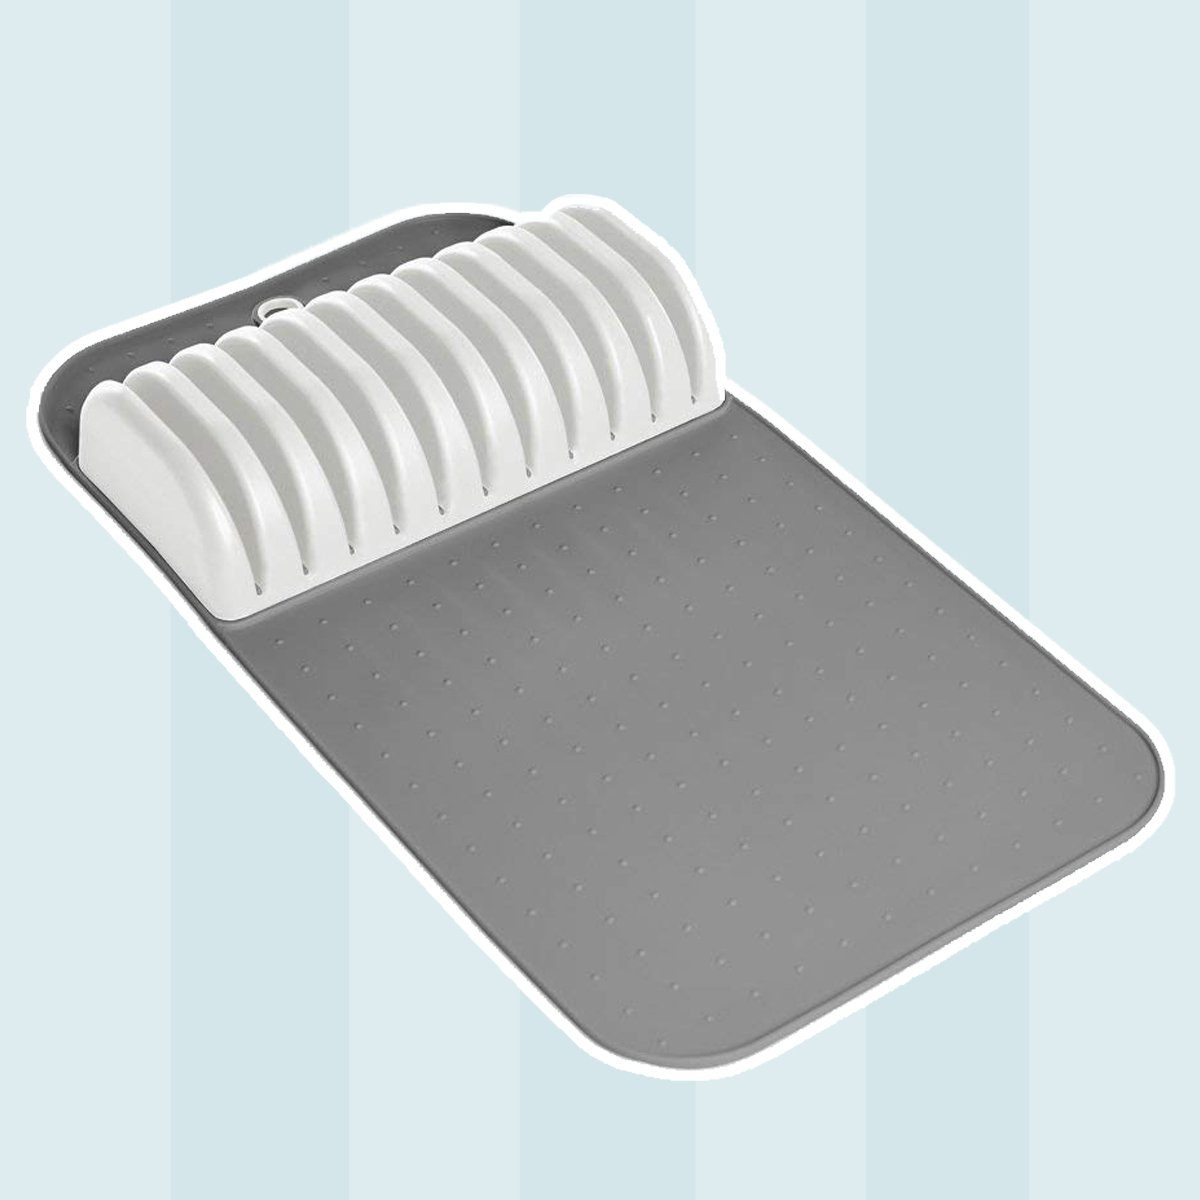 madesmart Large In-Drawer Knife Mat - White | CLASSIC COLLECTION | Holds up to 11 Knives | Safe | Open Design to fit Any Size Knife | Soft-grip Slots and Non-slip Mat | BPA Free